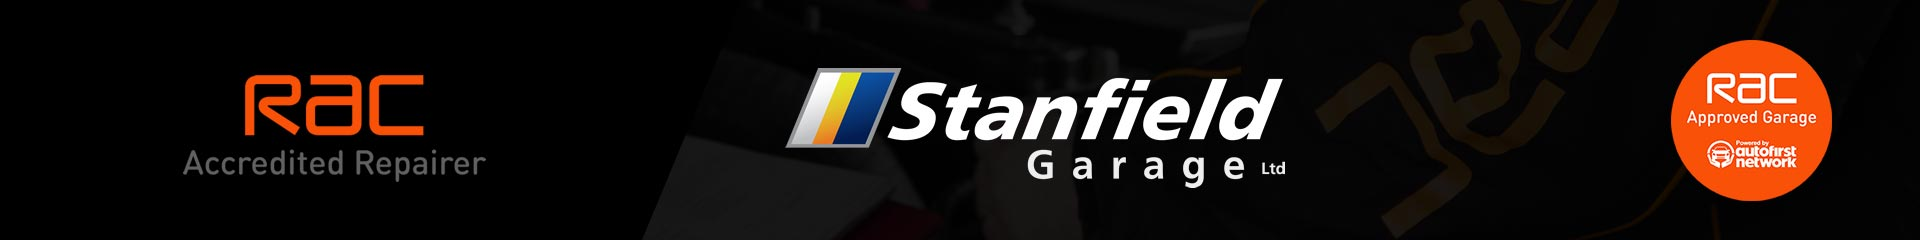 Stanfield Garage are RAC Accredited Repairers in Bournemouth